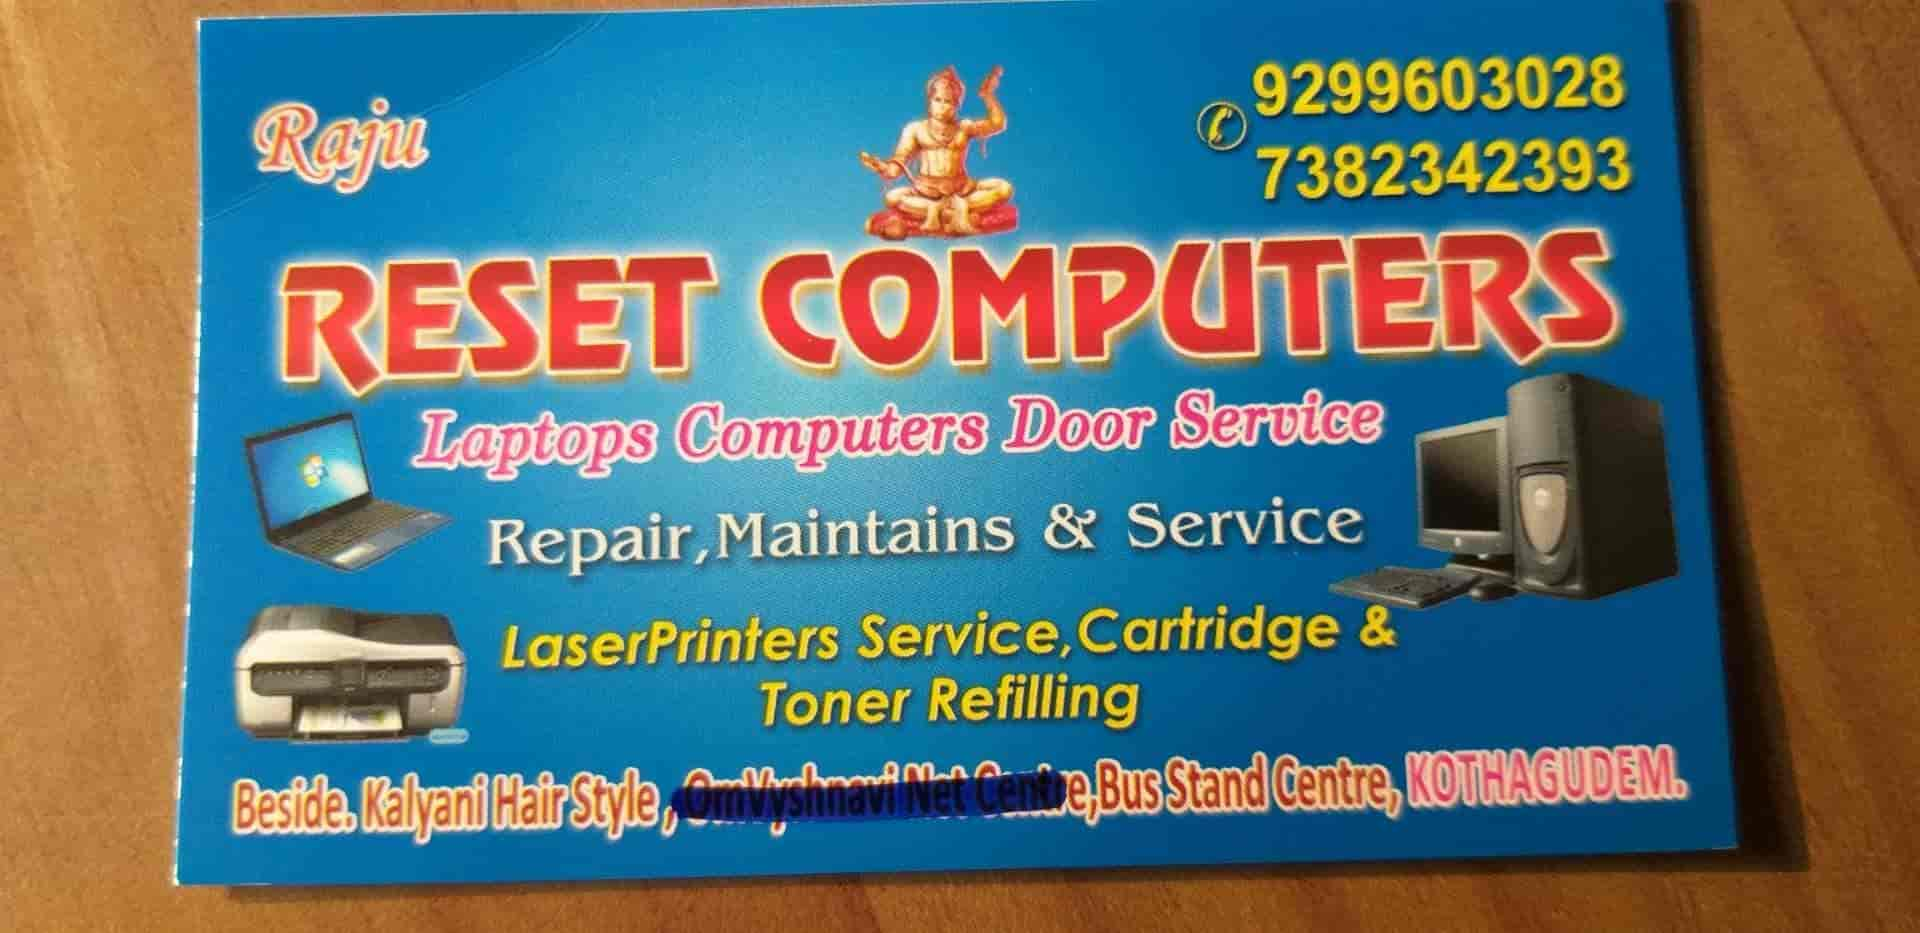 Reset Computers, Kothagudem - Computer Repair & Services in